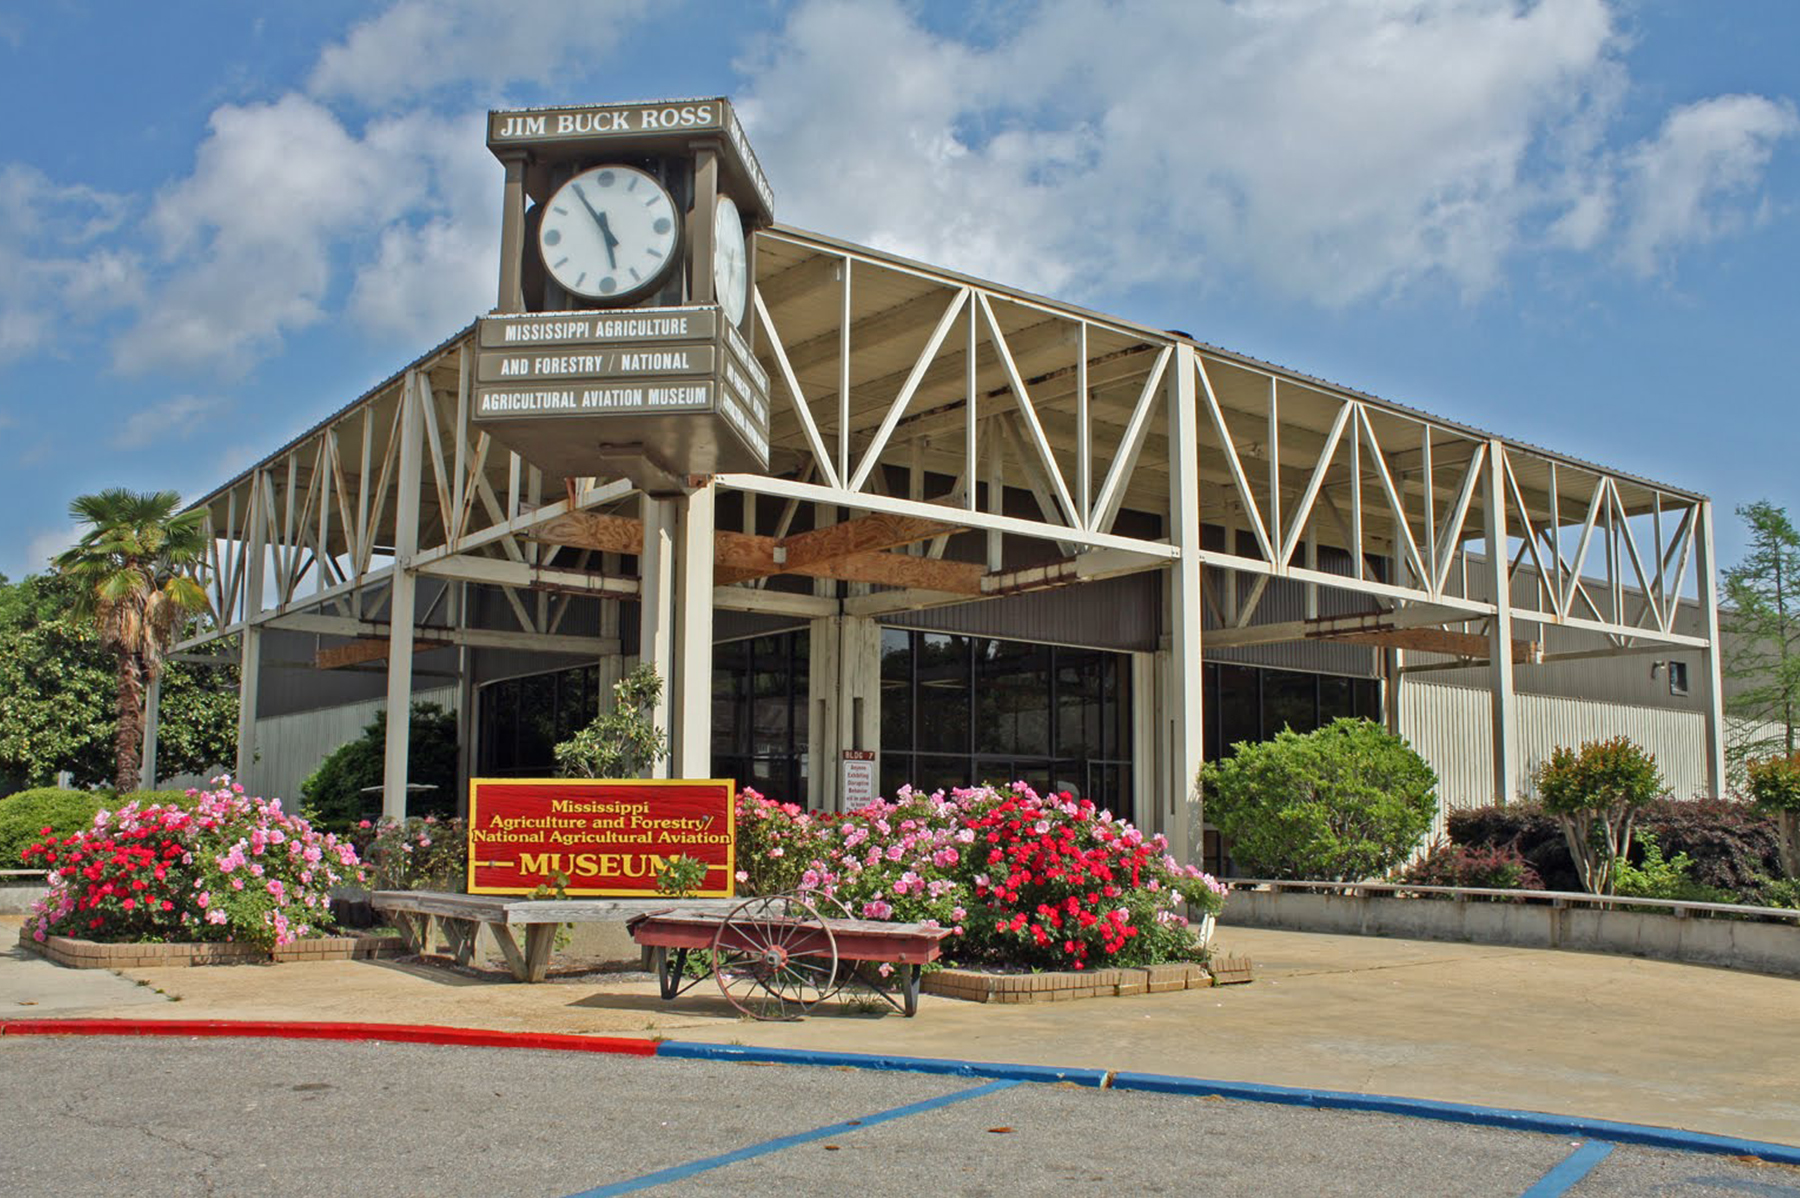 Mississippi Agriculture and Forestry Museum in Jackson MS